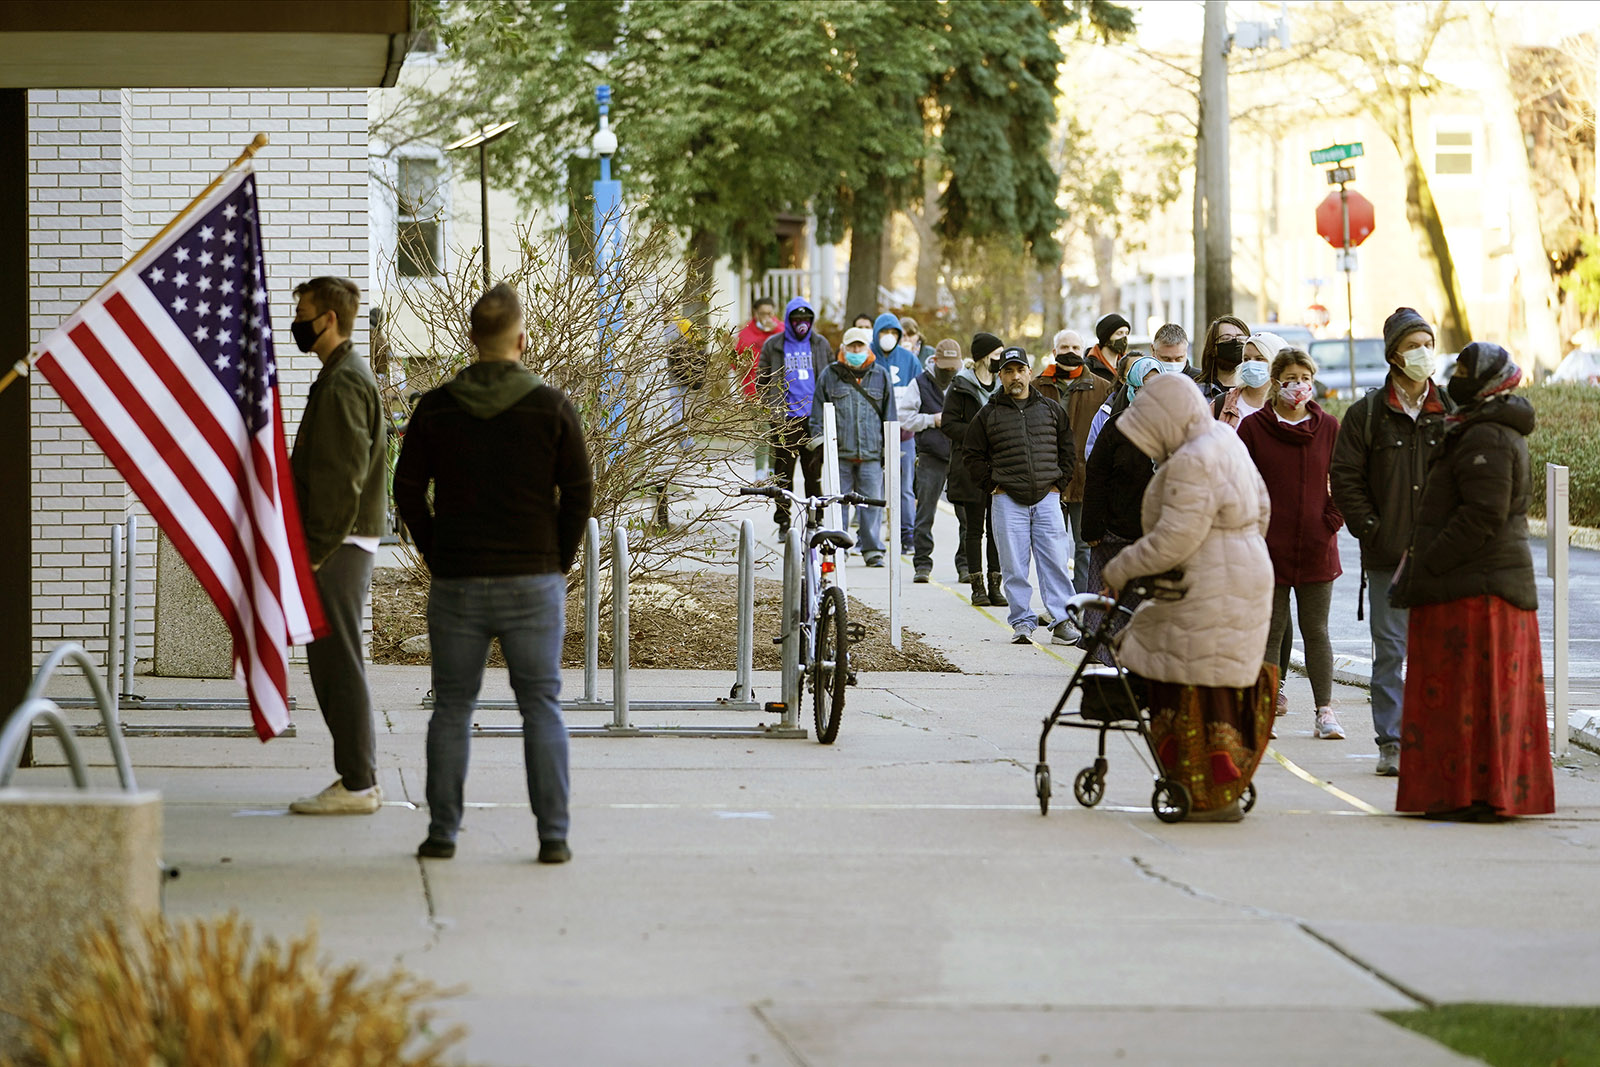 Voters waitto cast their votes on Election Day, Tuesday, Nov. 3, at the Minneapolis College of Art and Design in Minneapolis.